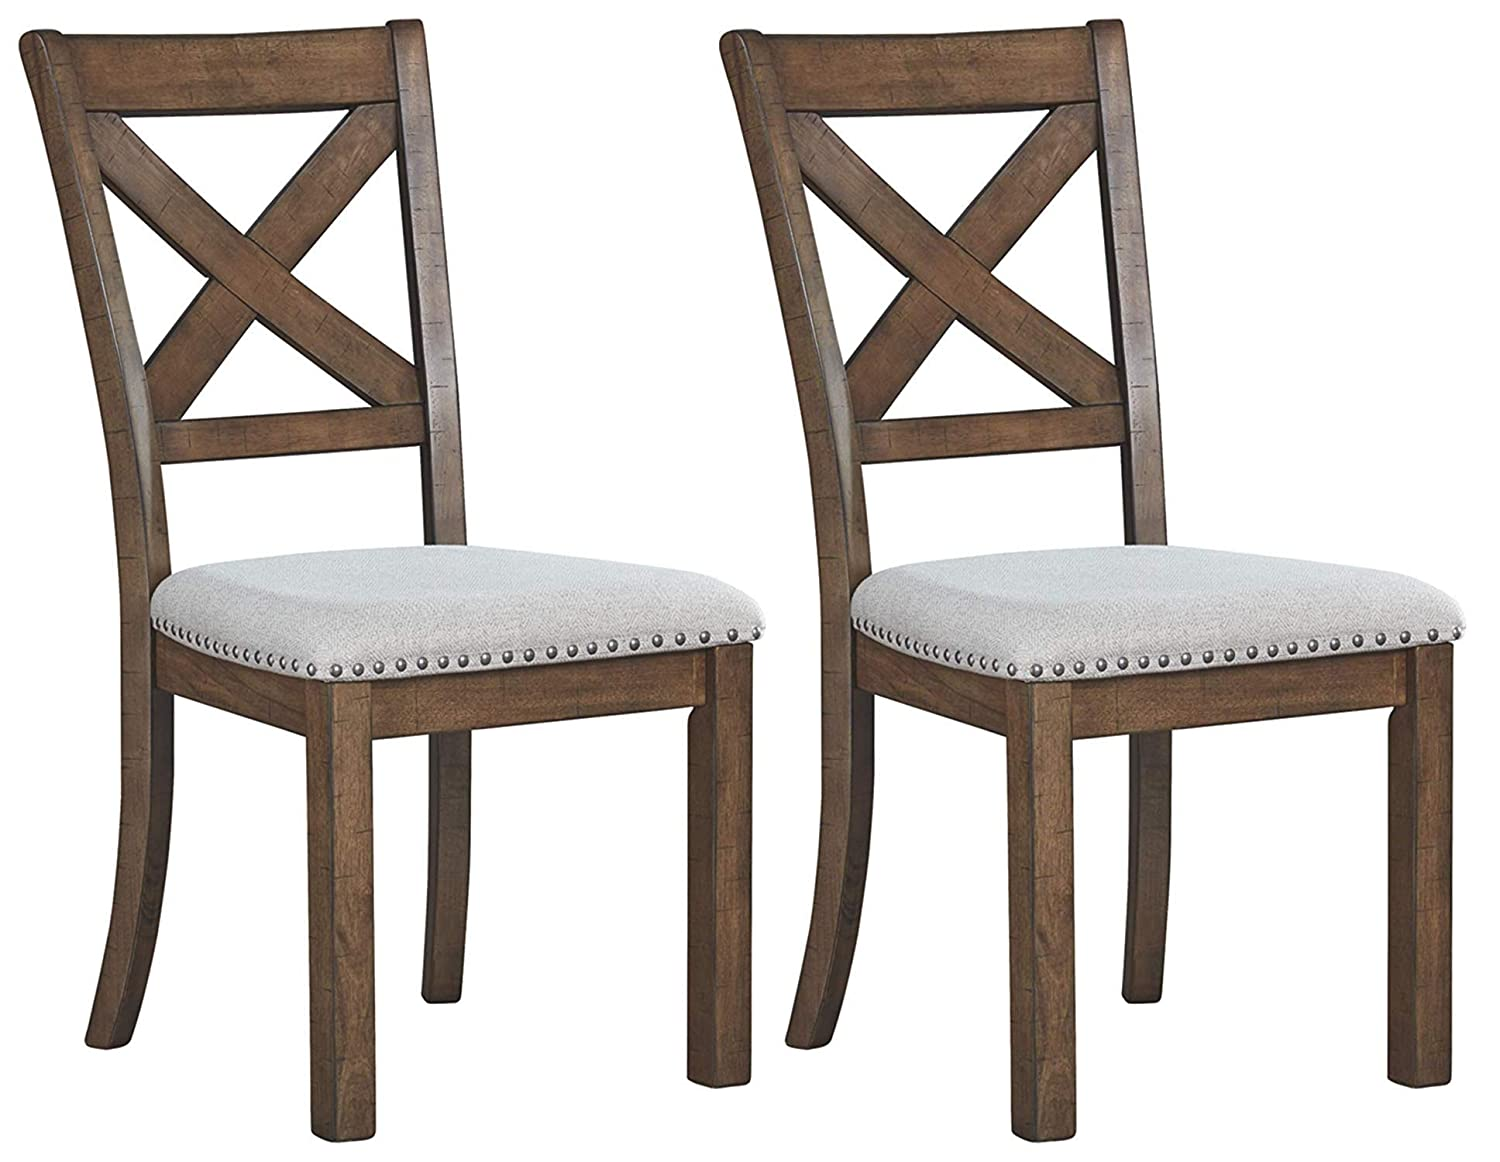 Signature Design by Ashley D631-01 Moriville Dining Room Chair